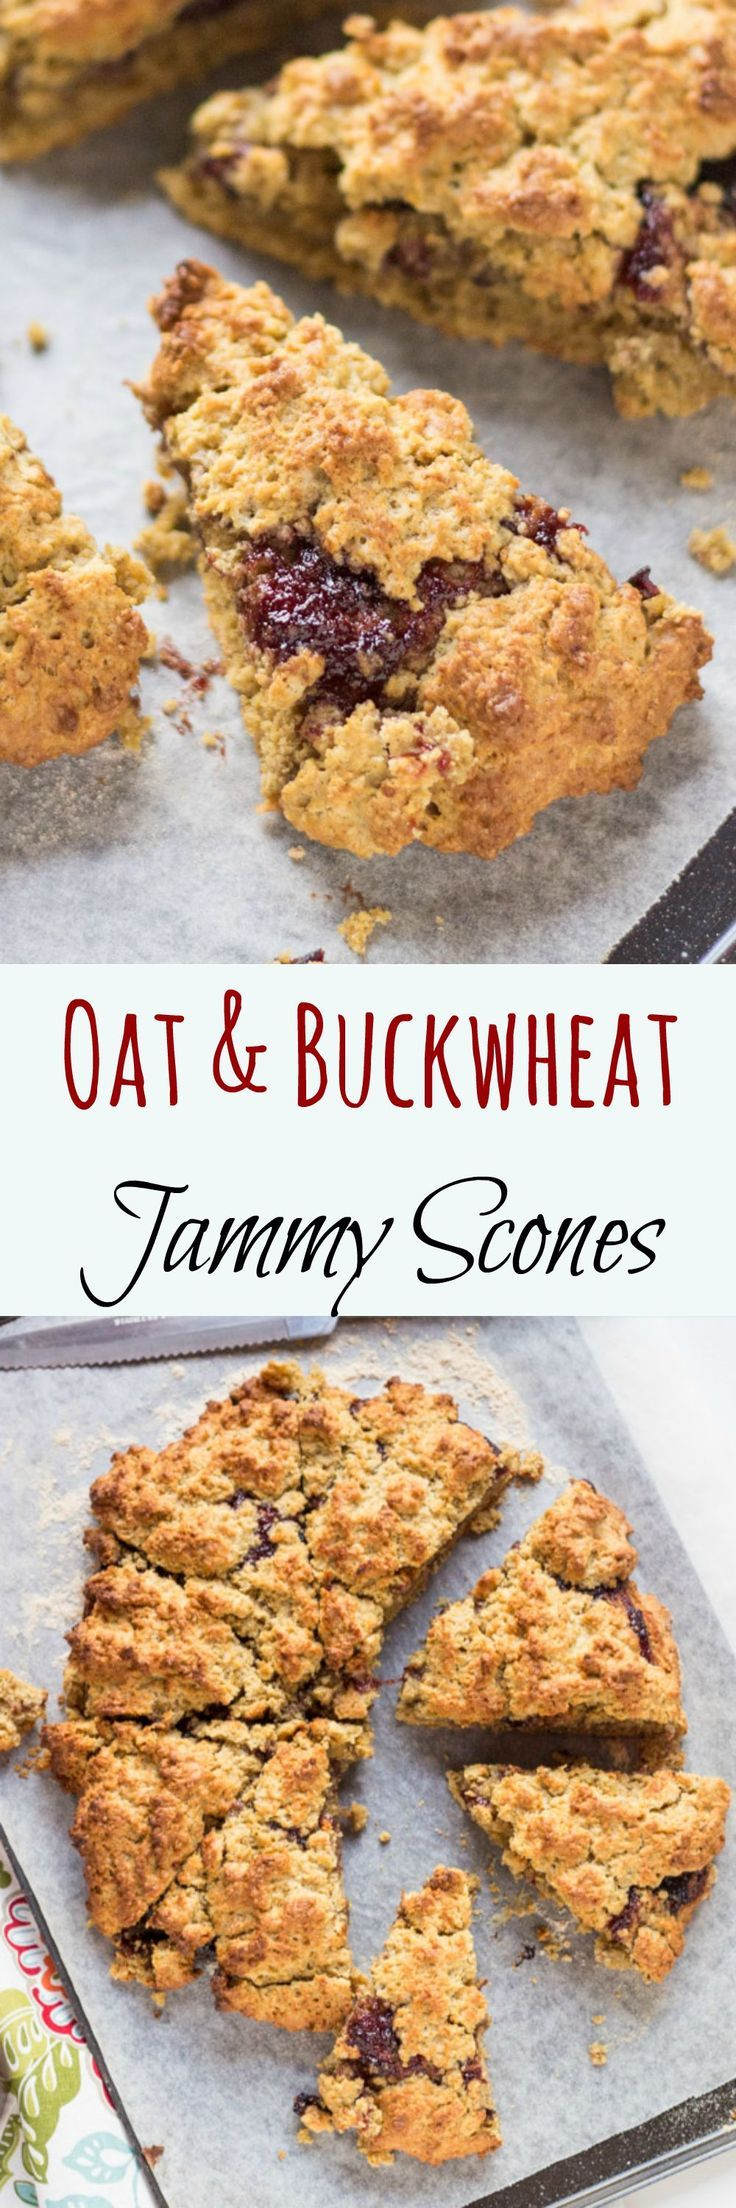 Oat & Buckwheat Jammy Scones come pre-loaded with jam, so all you need to add is cream.